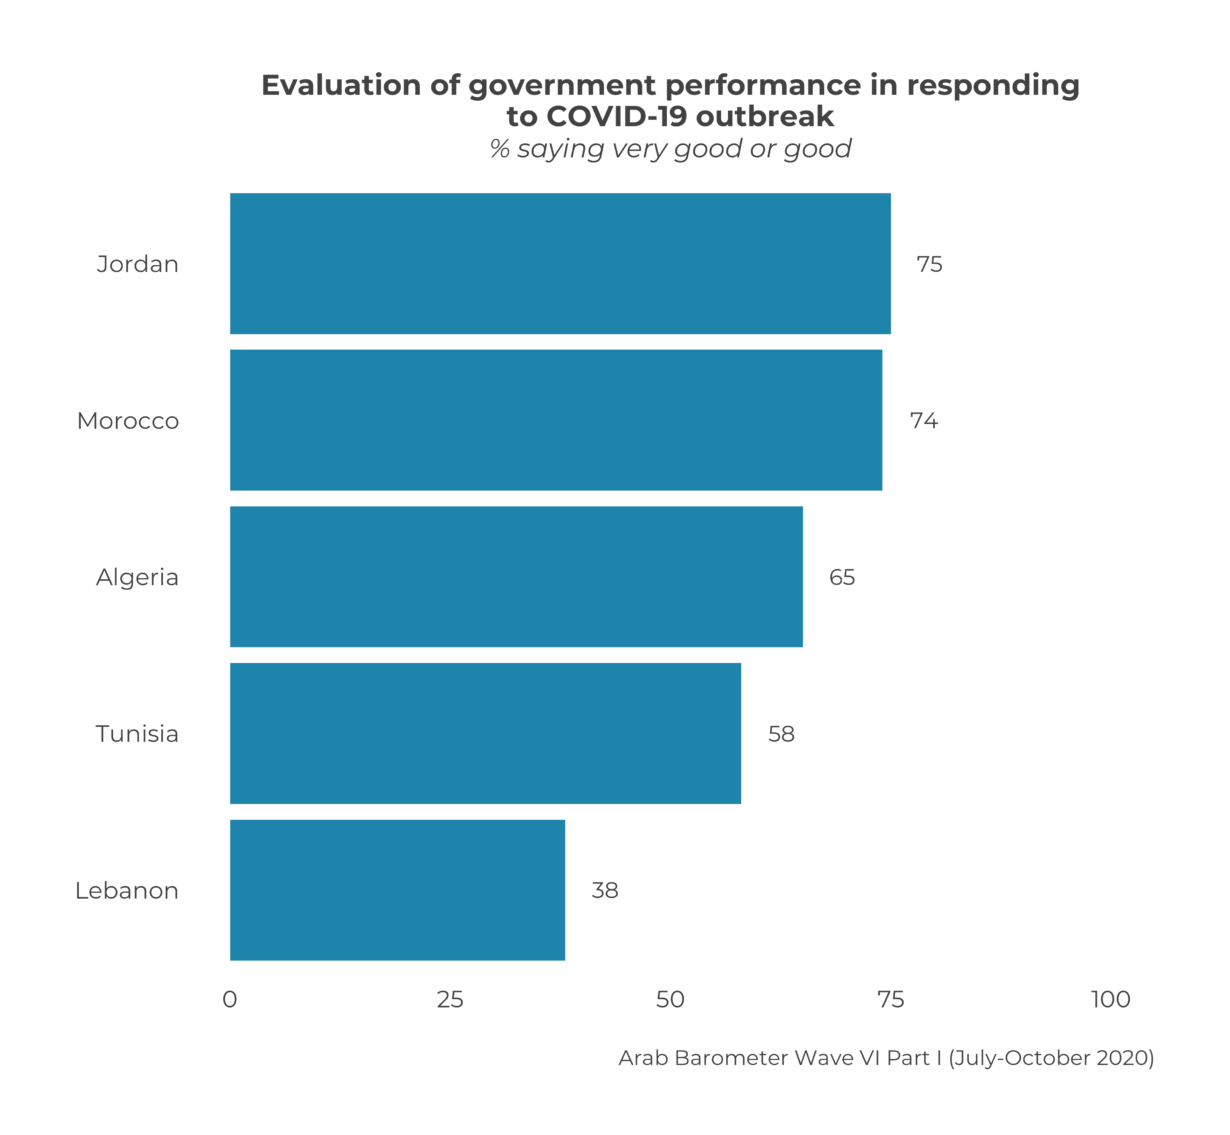 Arabs' Evaluations of their Governments' Response to COVID-19